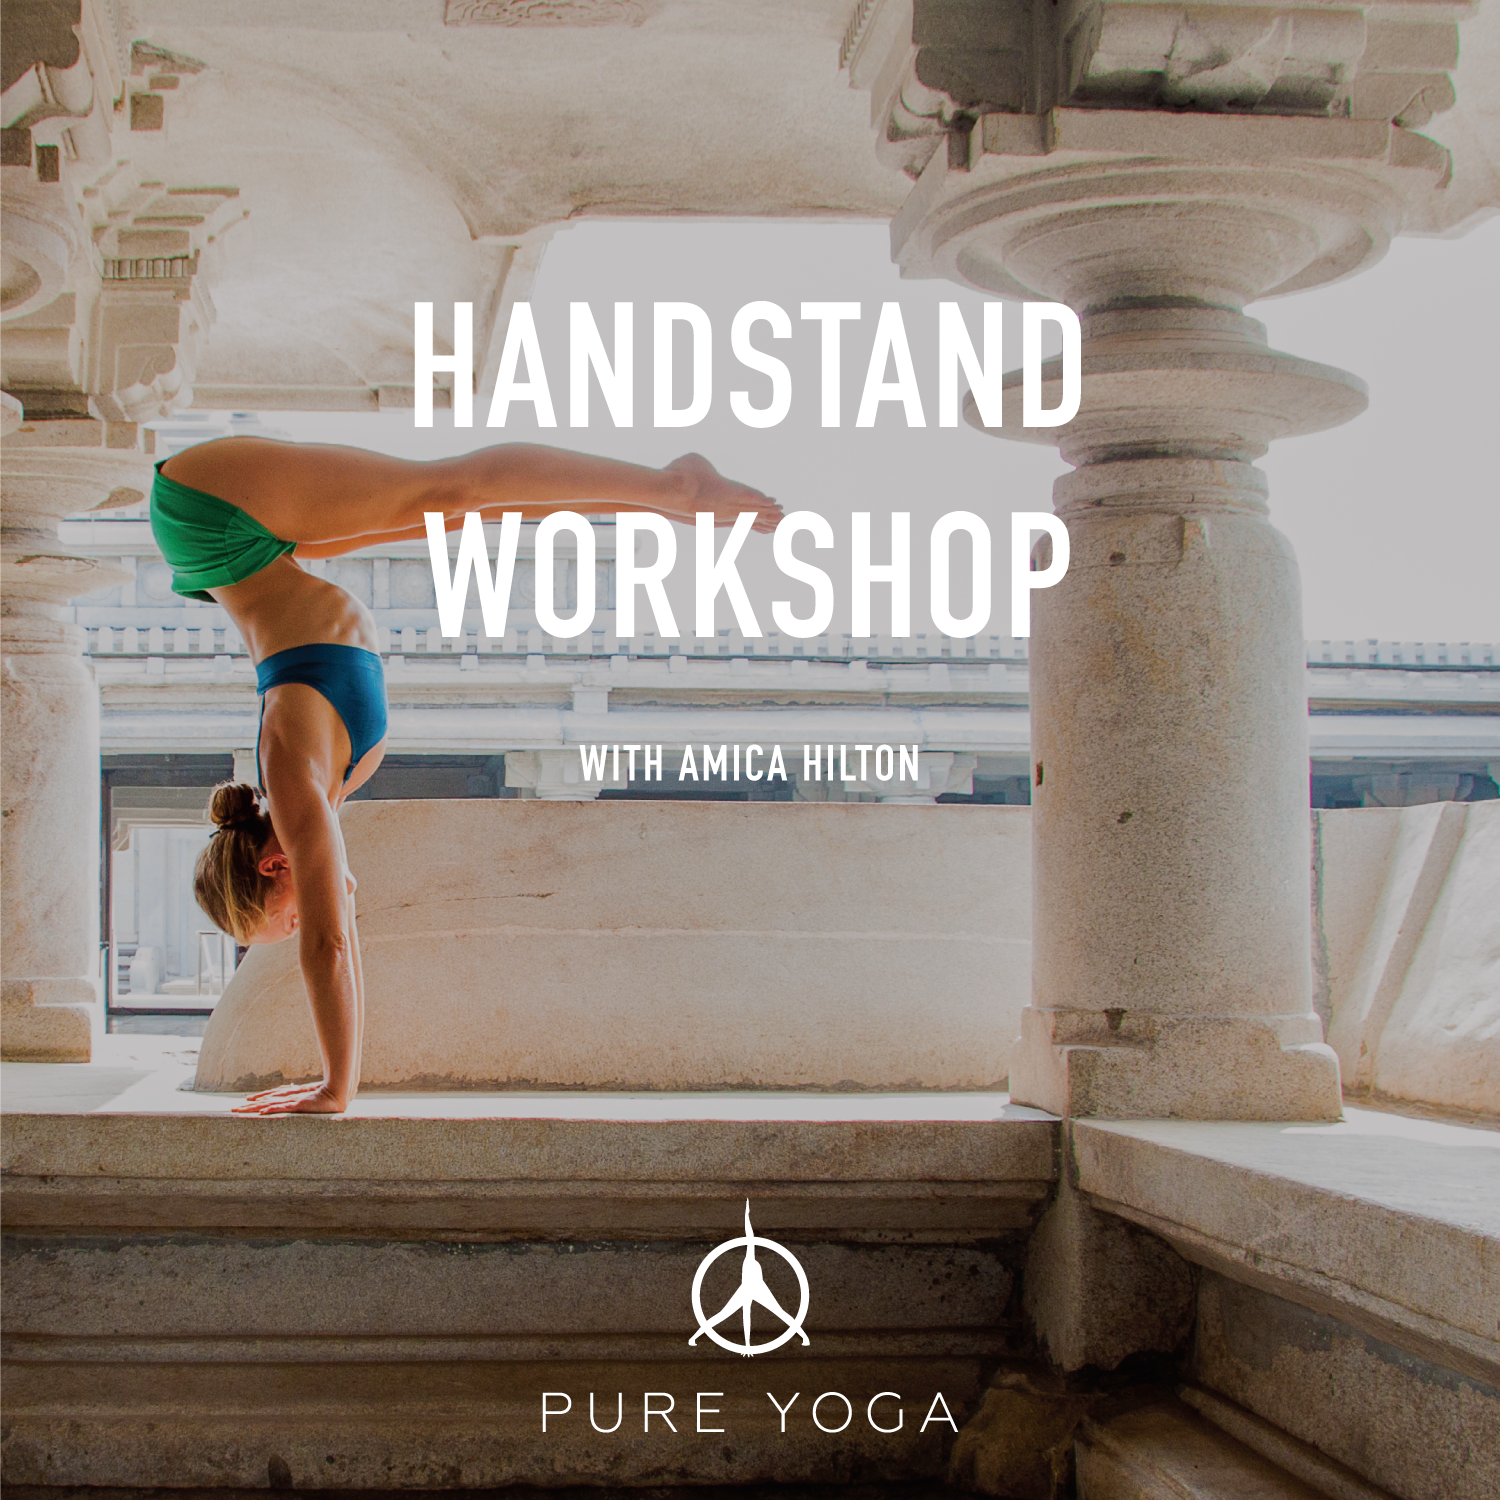 Handstand workshop square